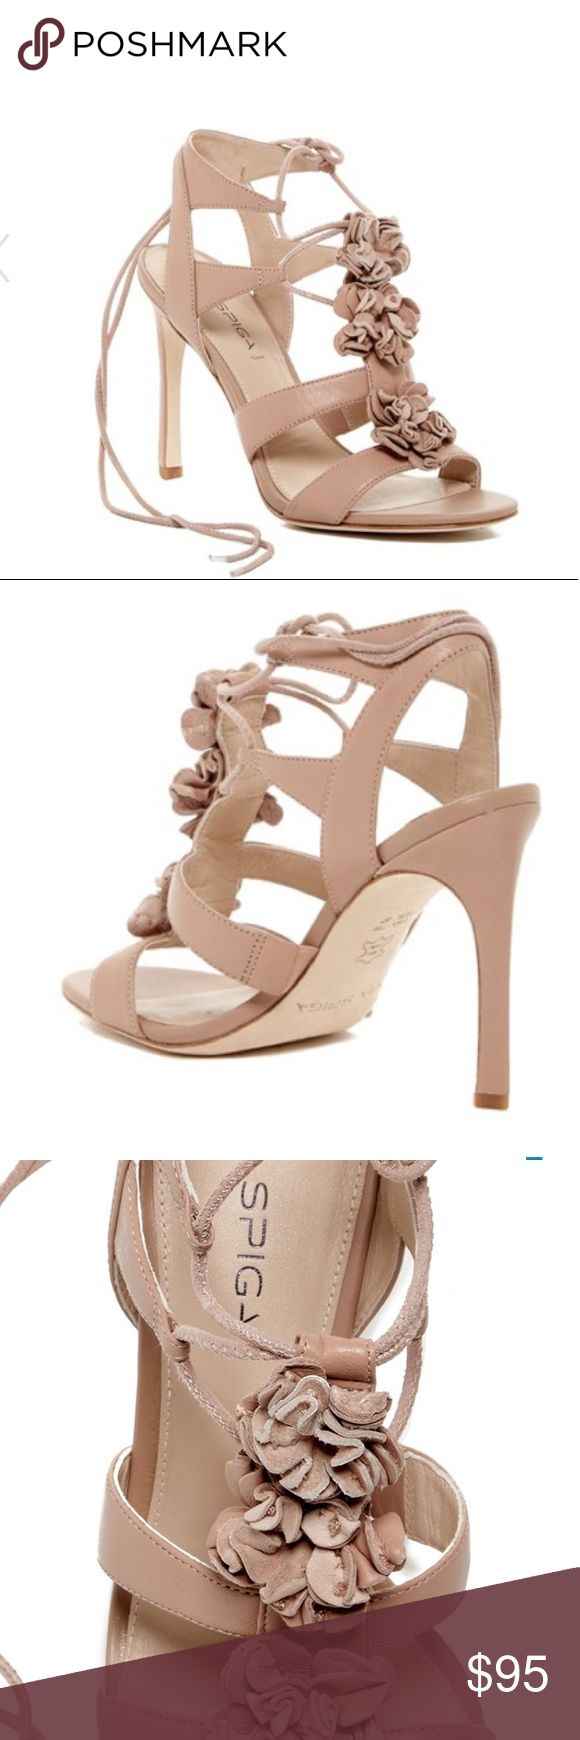 NWT Via Spiga Deedee lace up heel, blush, 8.5 NWT Via Spiga Deedee lace up heel, blush, 8.5. Open toe, cut out design. Ankle strap with lace up counter design. Lightly padded footbed and cone heel. Perfect for a wedding or night out on the town. Excellent neutral color! Via Spiga Shoes Heels